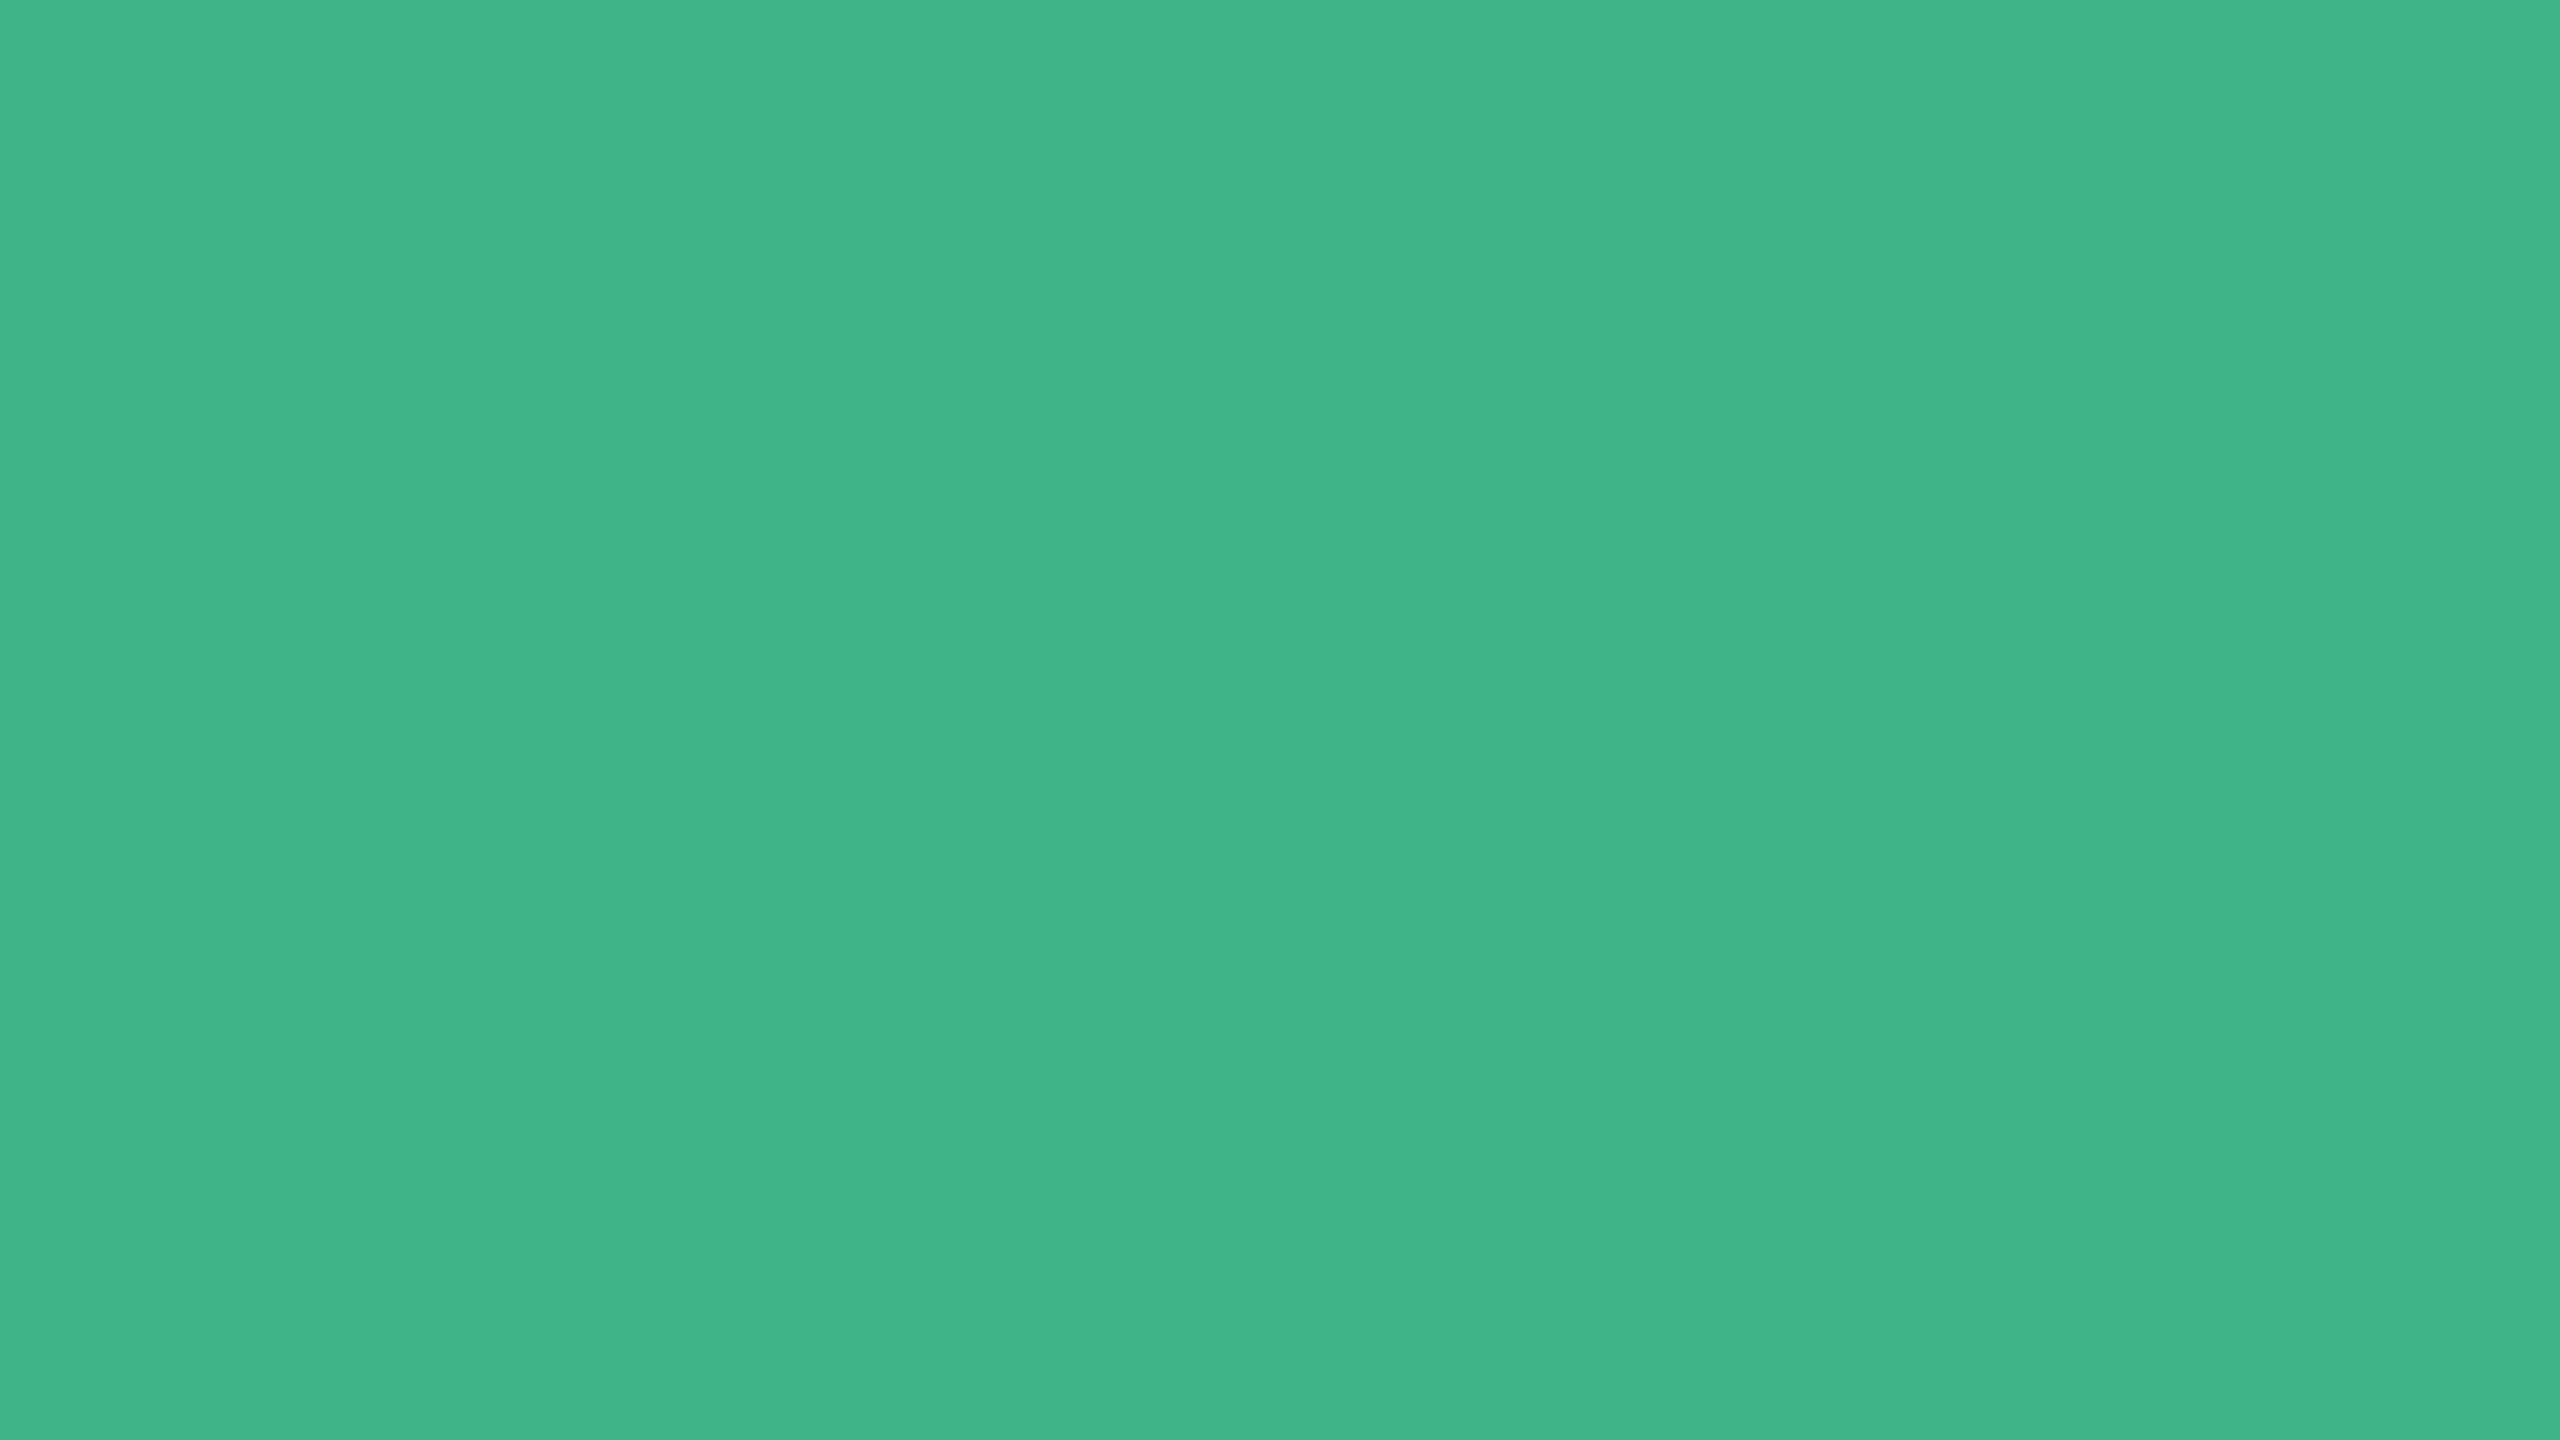 2560x1440 Mint Solid Color Background